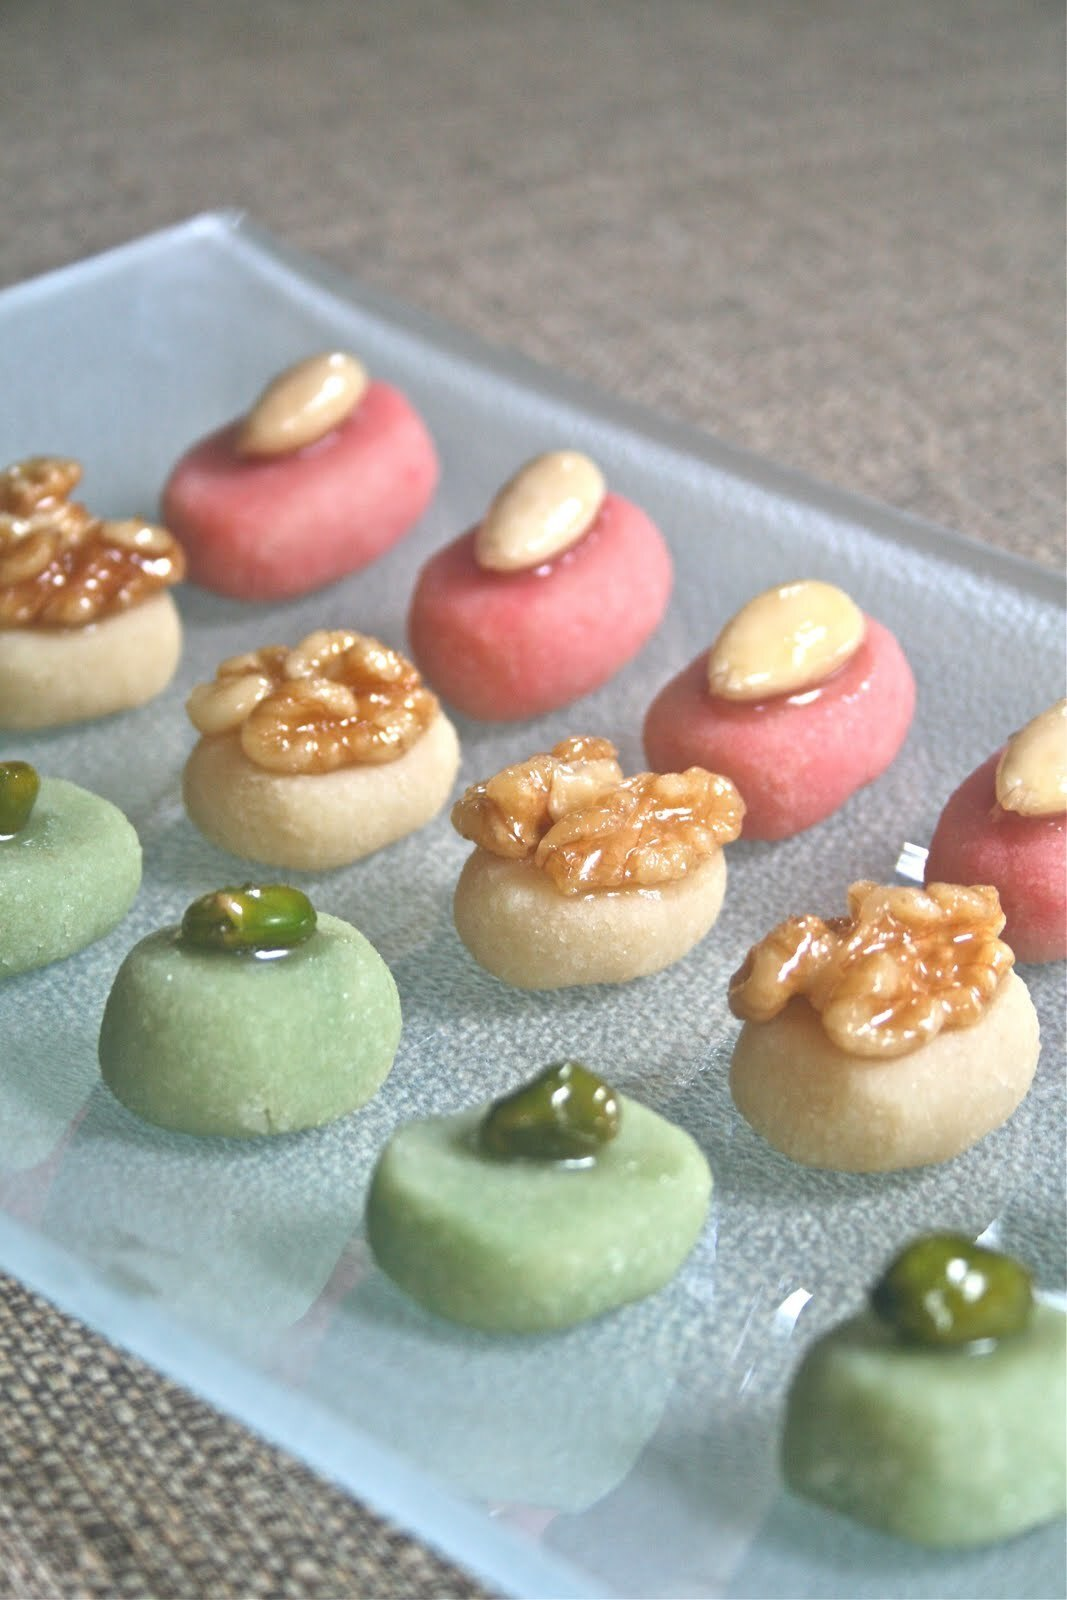 Home Made Marzipan Sweets